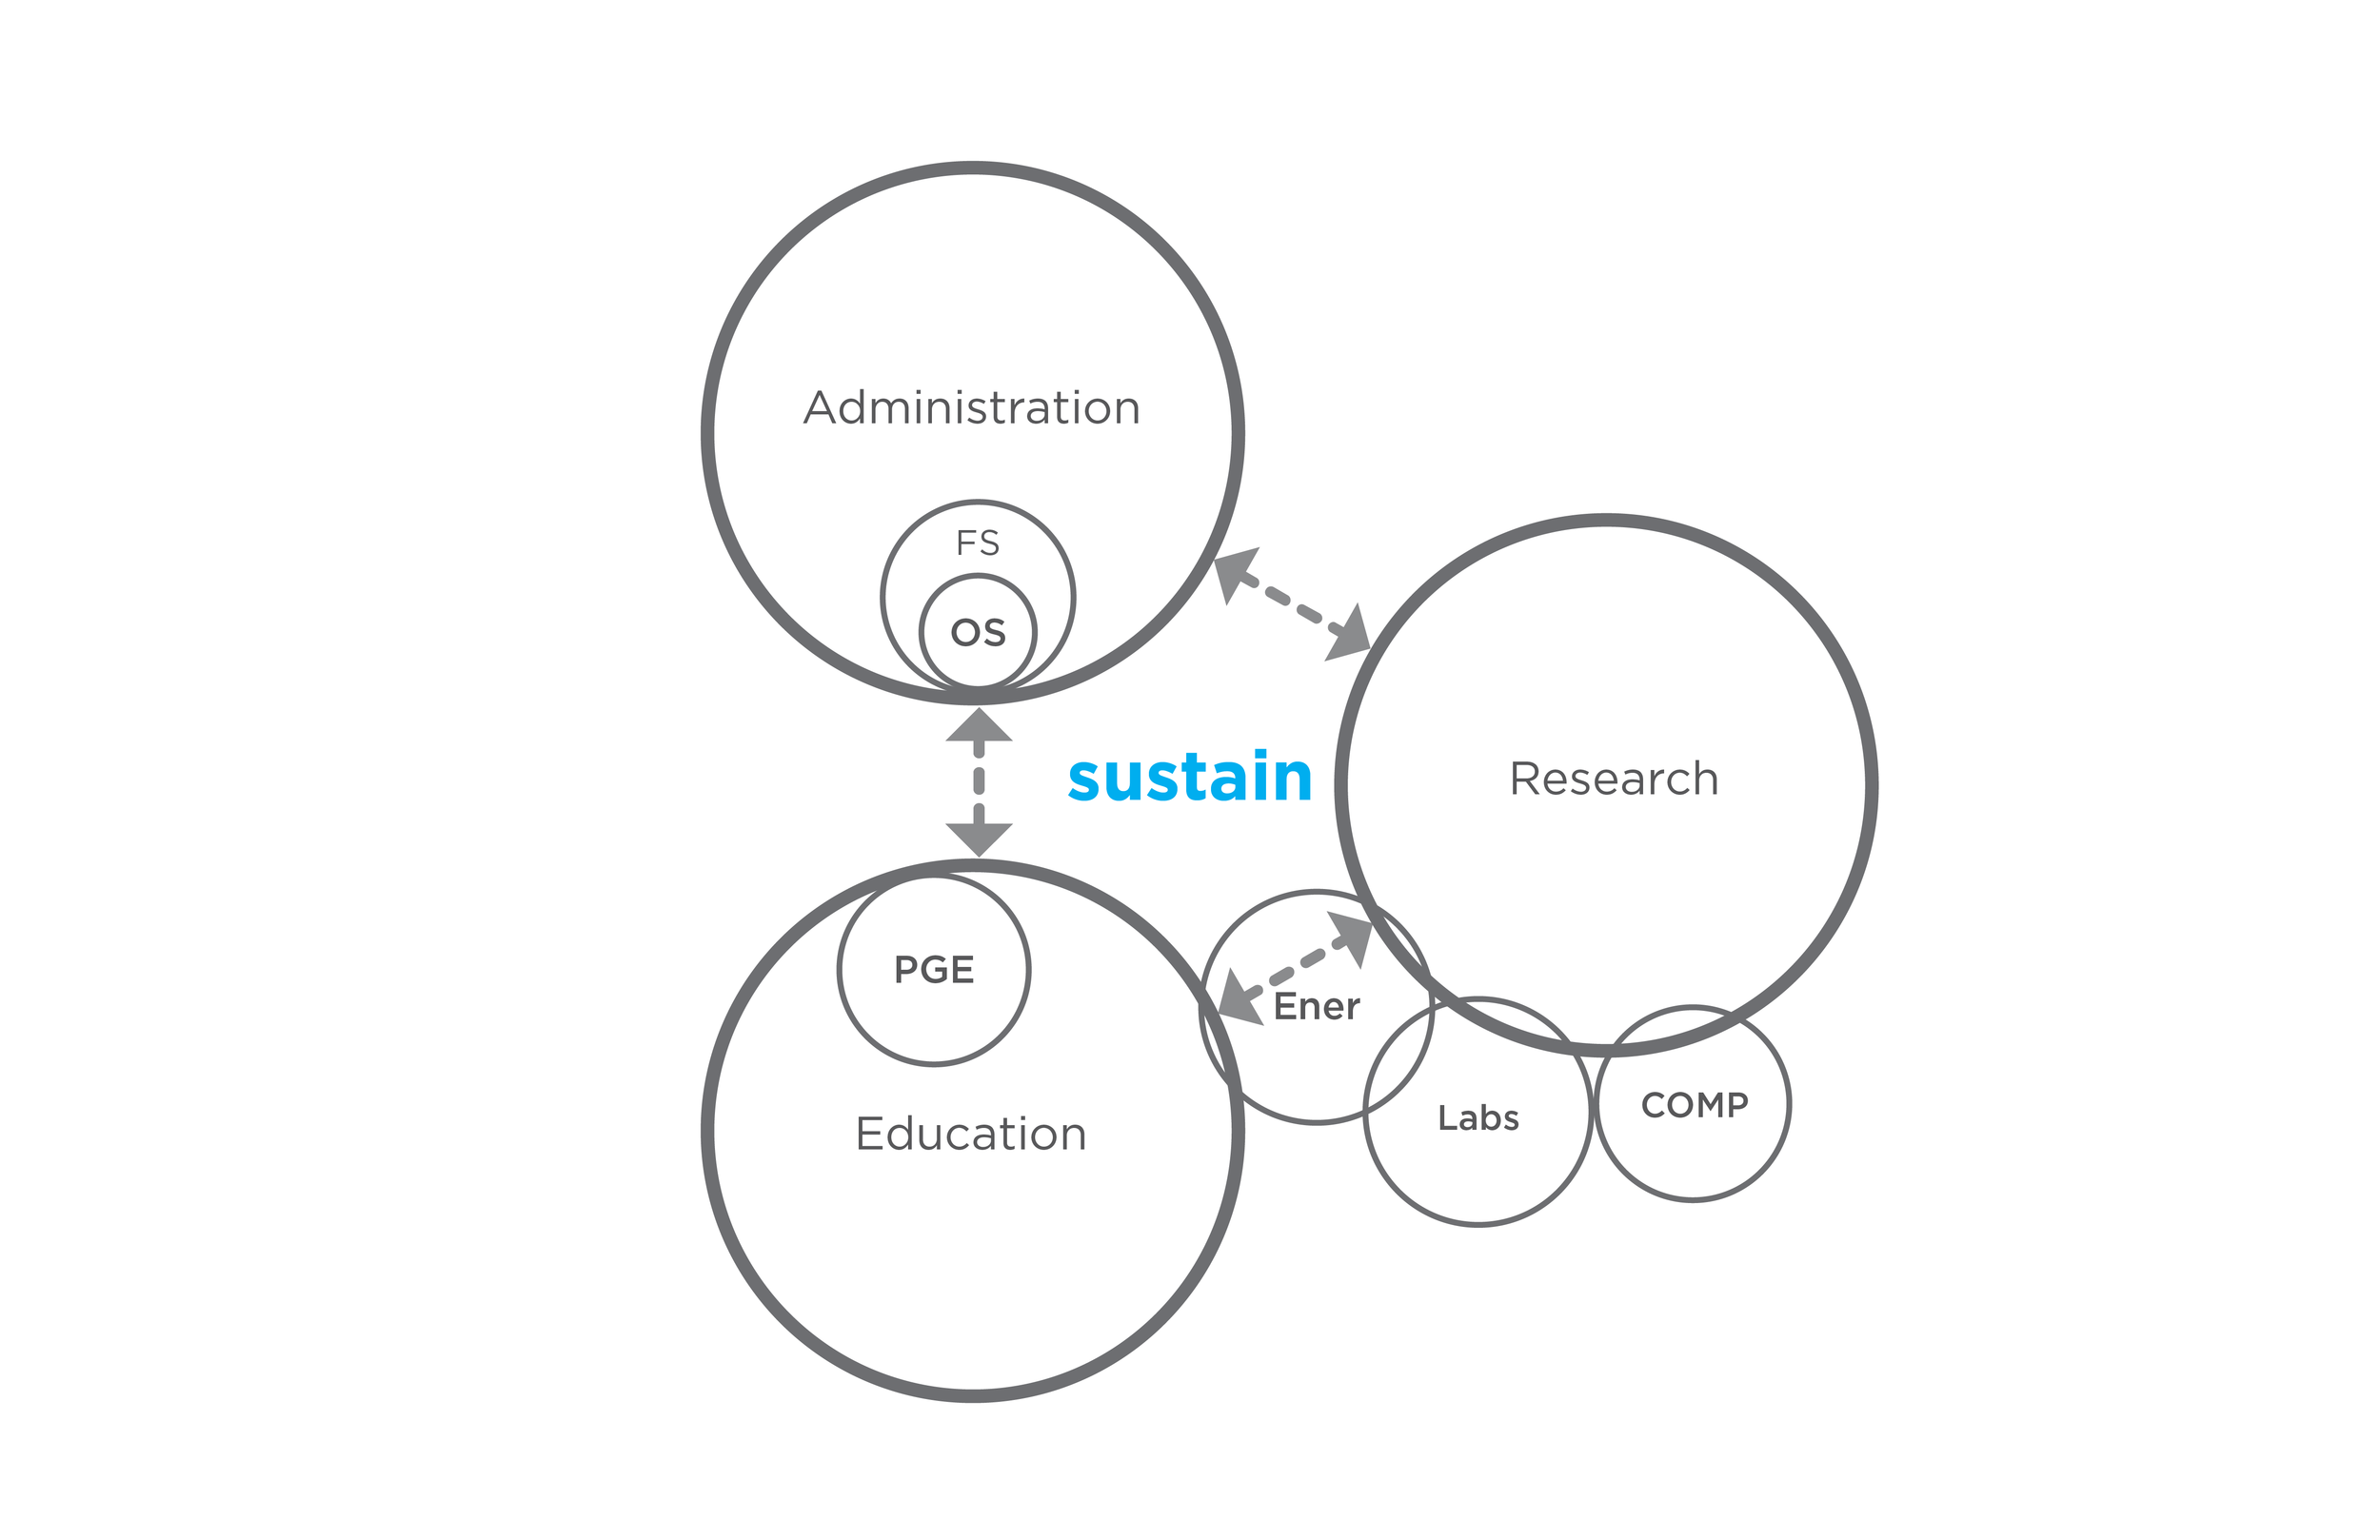 sustainable org diagrams-03.png